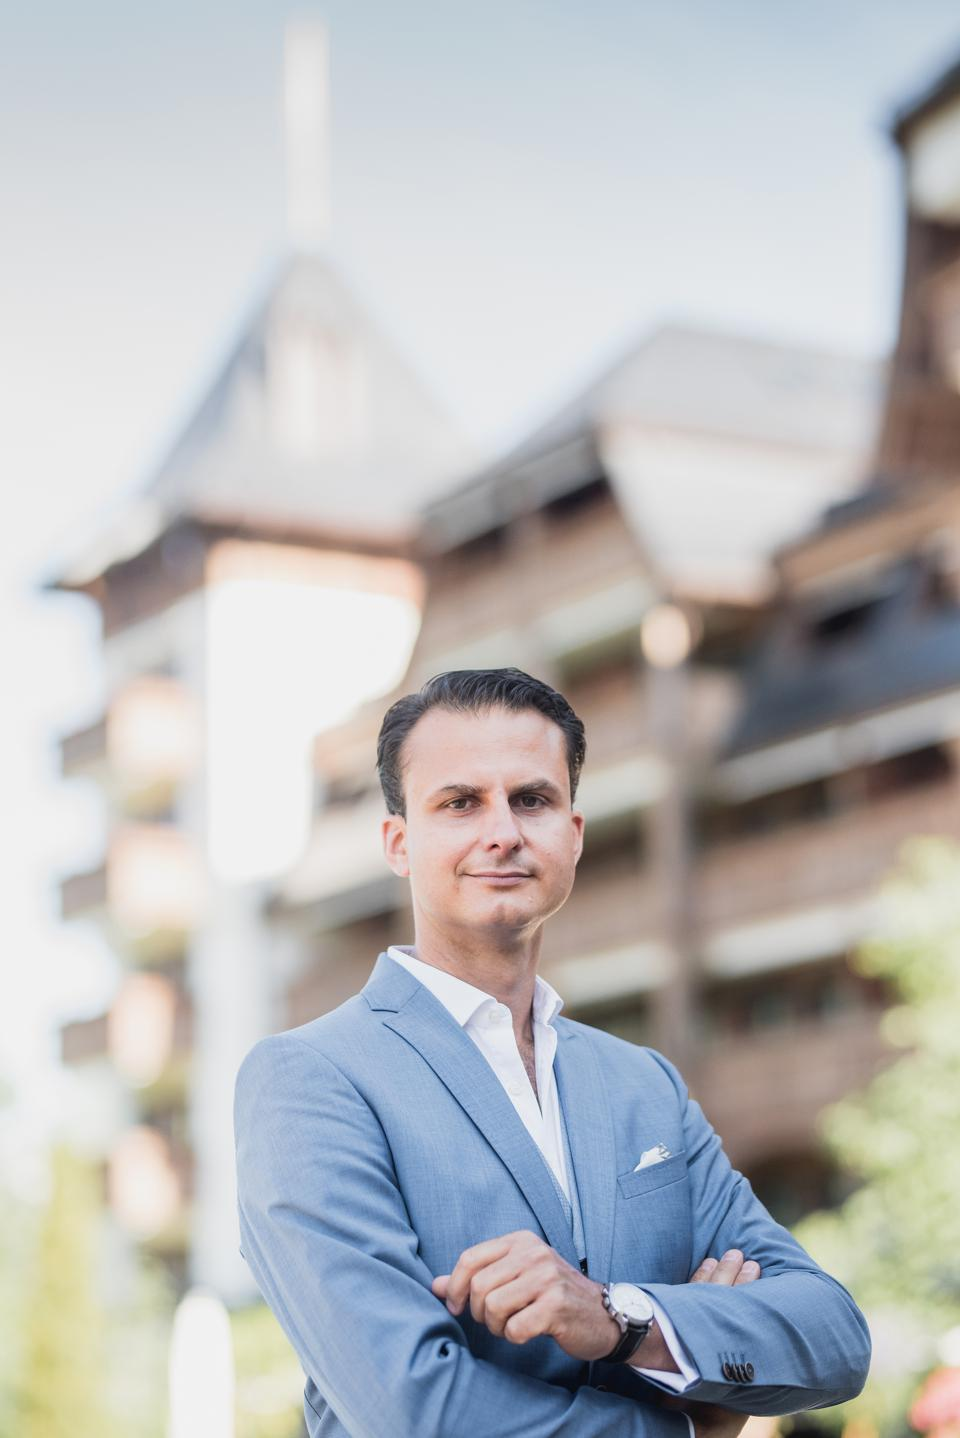 Tim Weiland, General Manager of The Alpina Gstaad